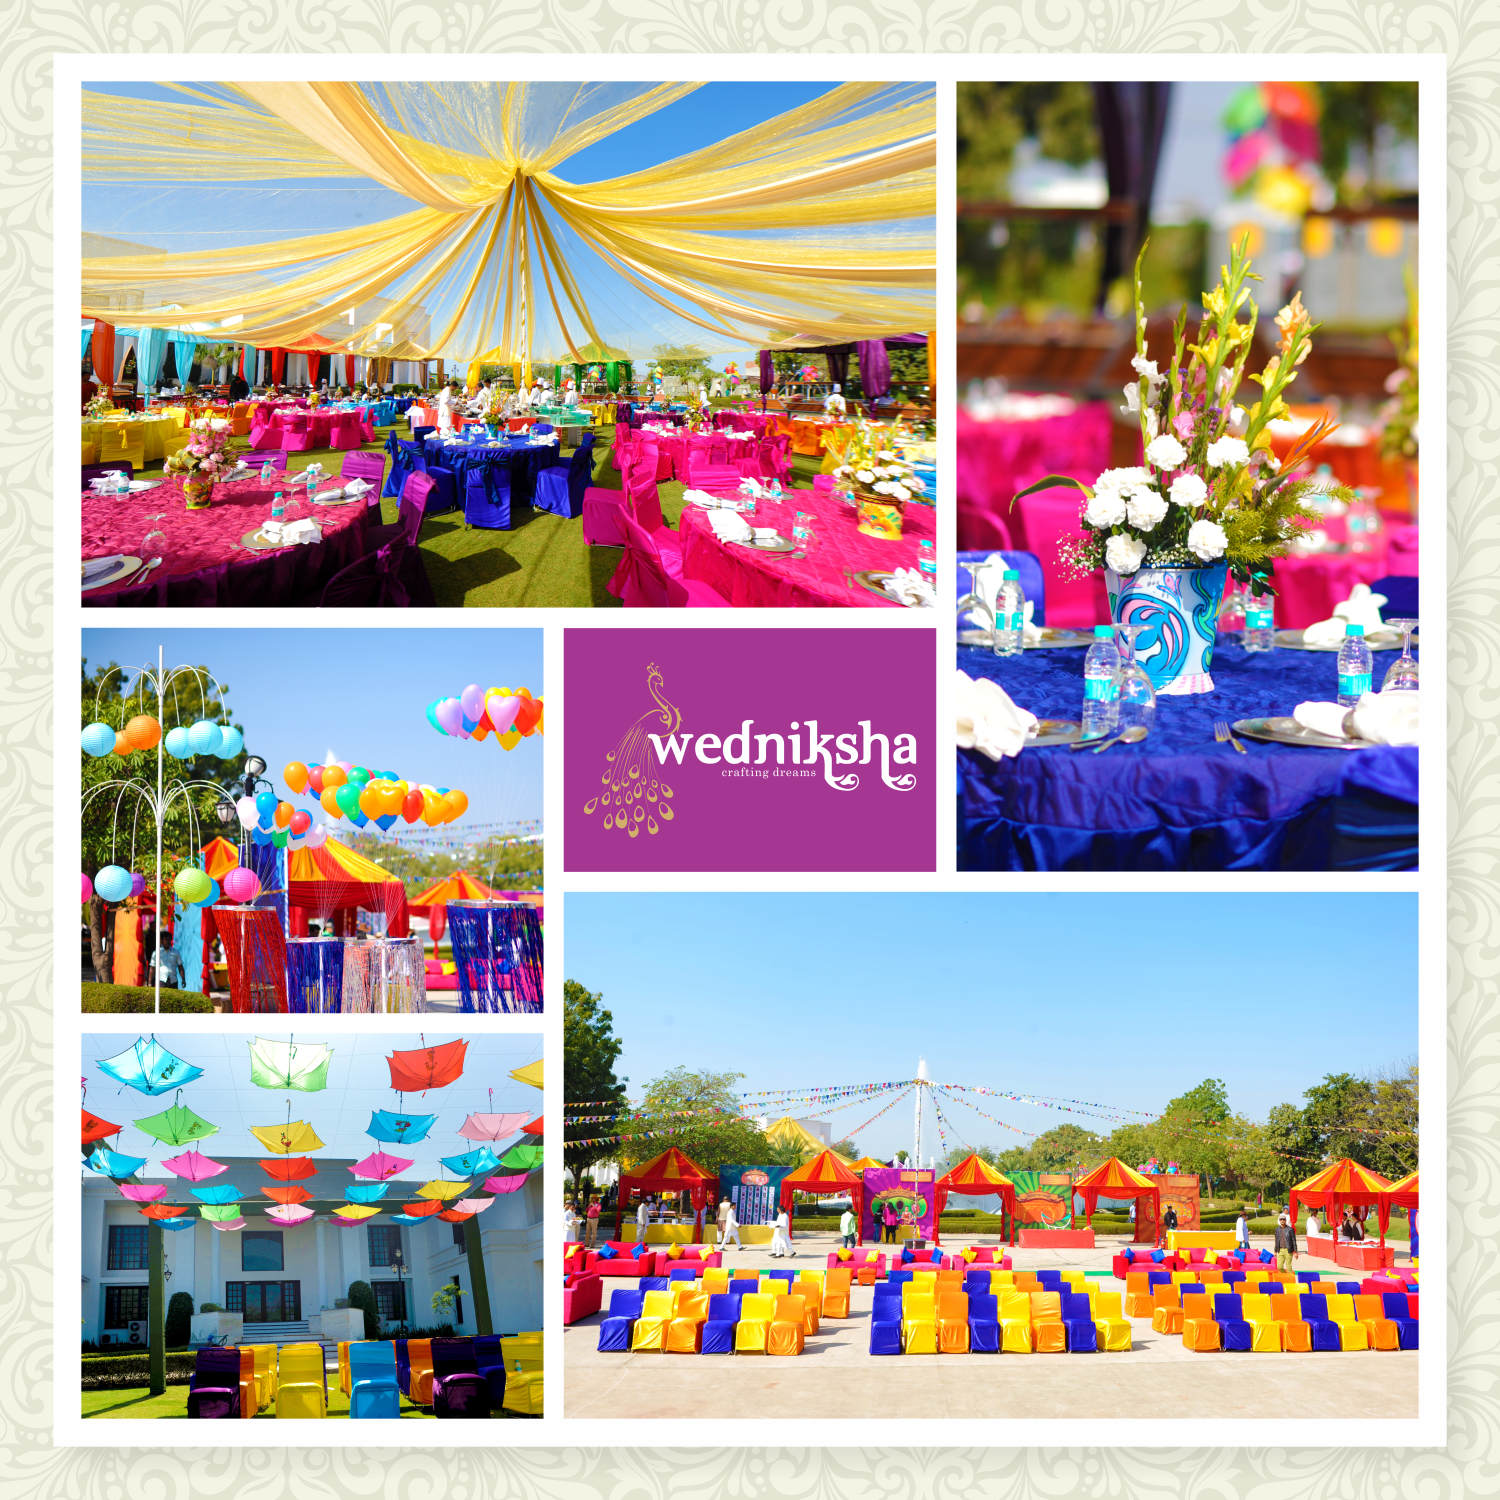 The carnival theme did its magic just right at the Jaipur wedding! The bright yellow and blue shades simply freshened up the minds of our guests thereby bringing bright smiles onto their faces.  Created by ‪#‎Wedniksha‬